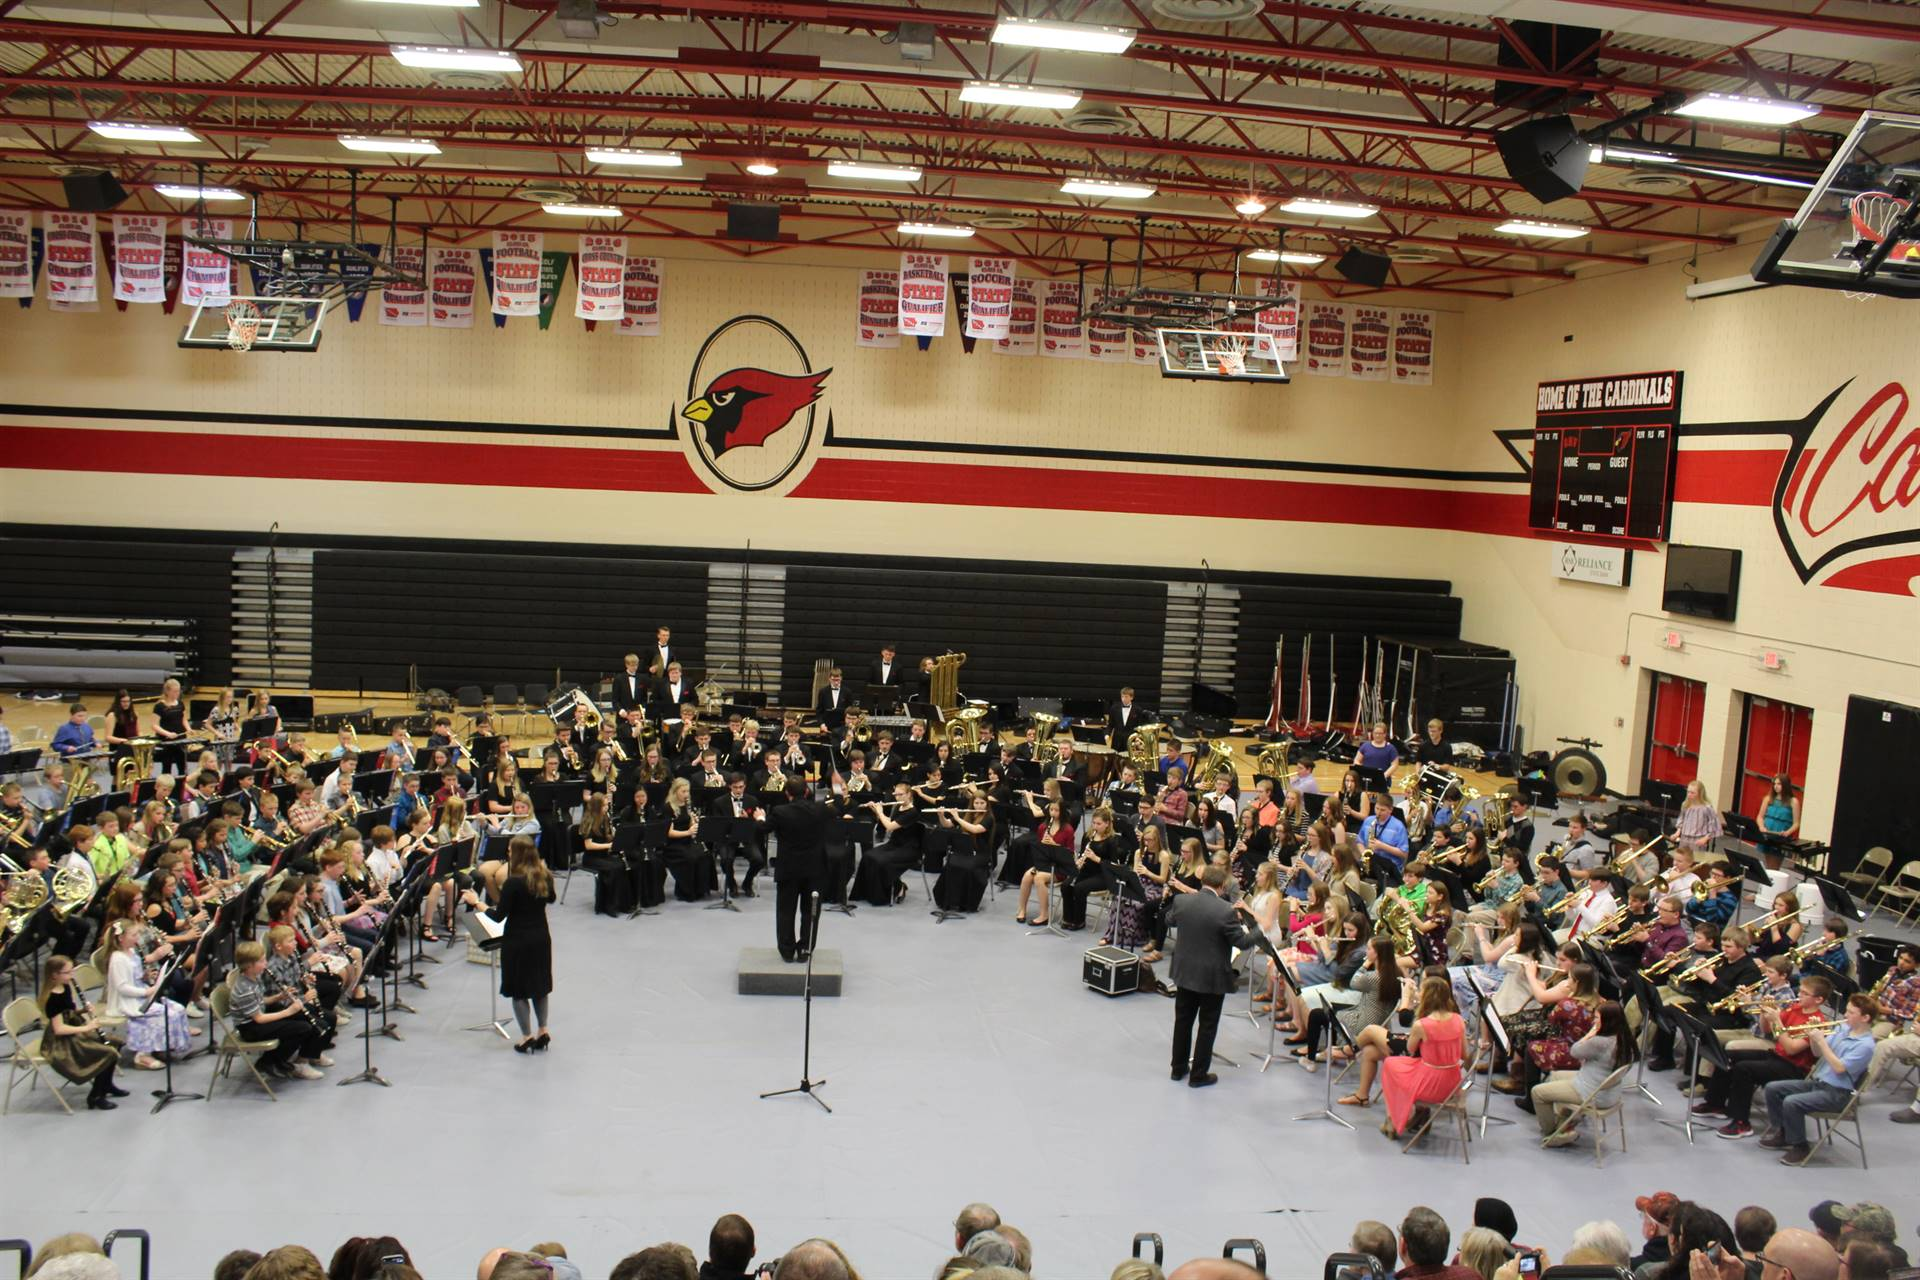 5th through 12th grade students assembled as one concert band